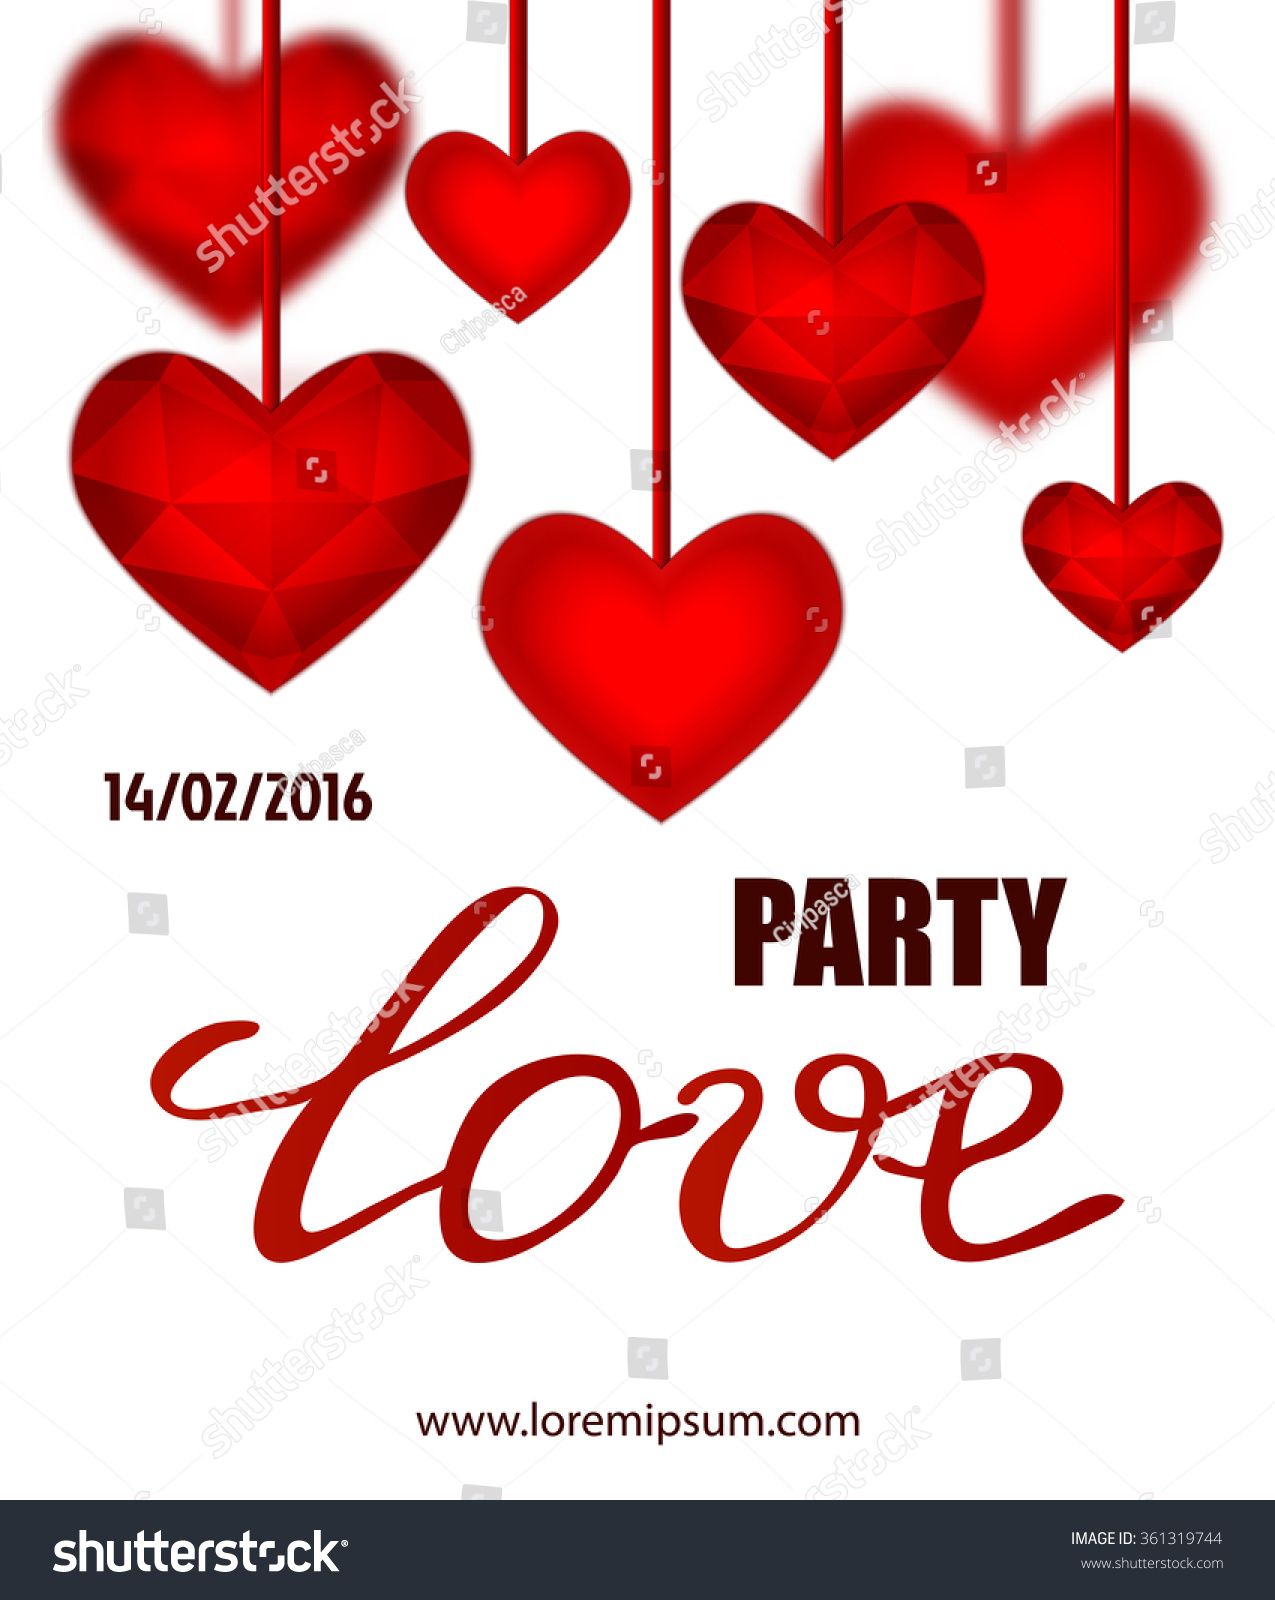 Valentines Party Poster Design Template Invitation Stock Vector HD ...